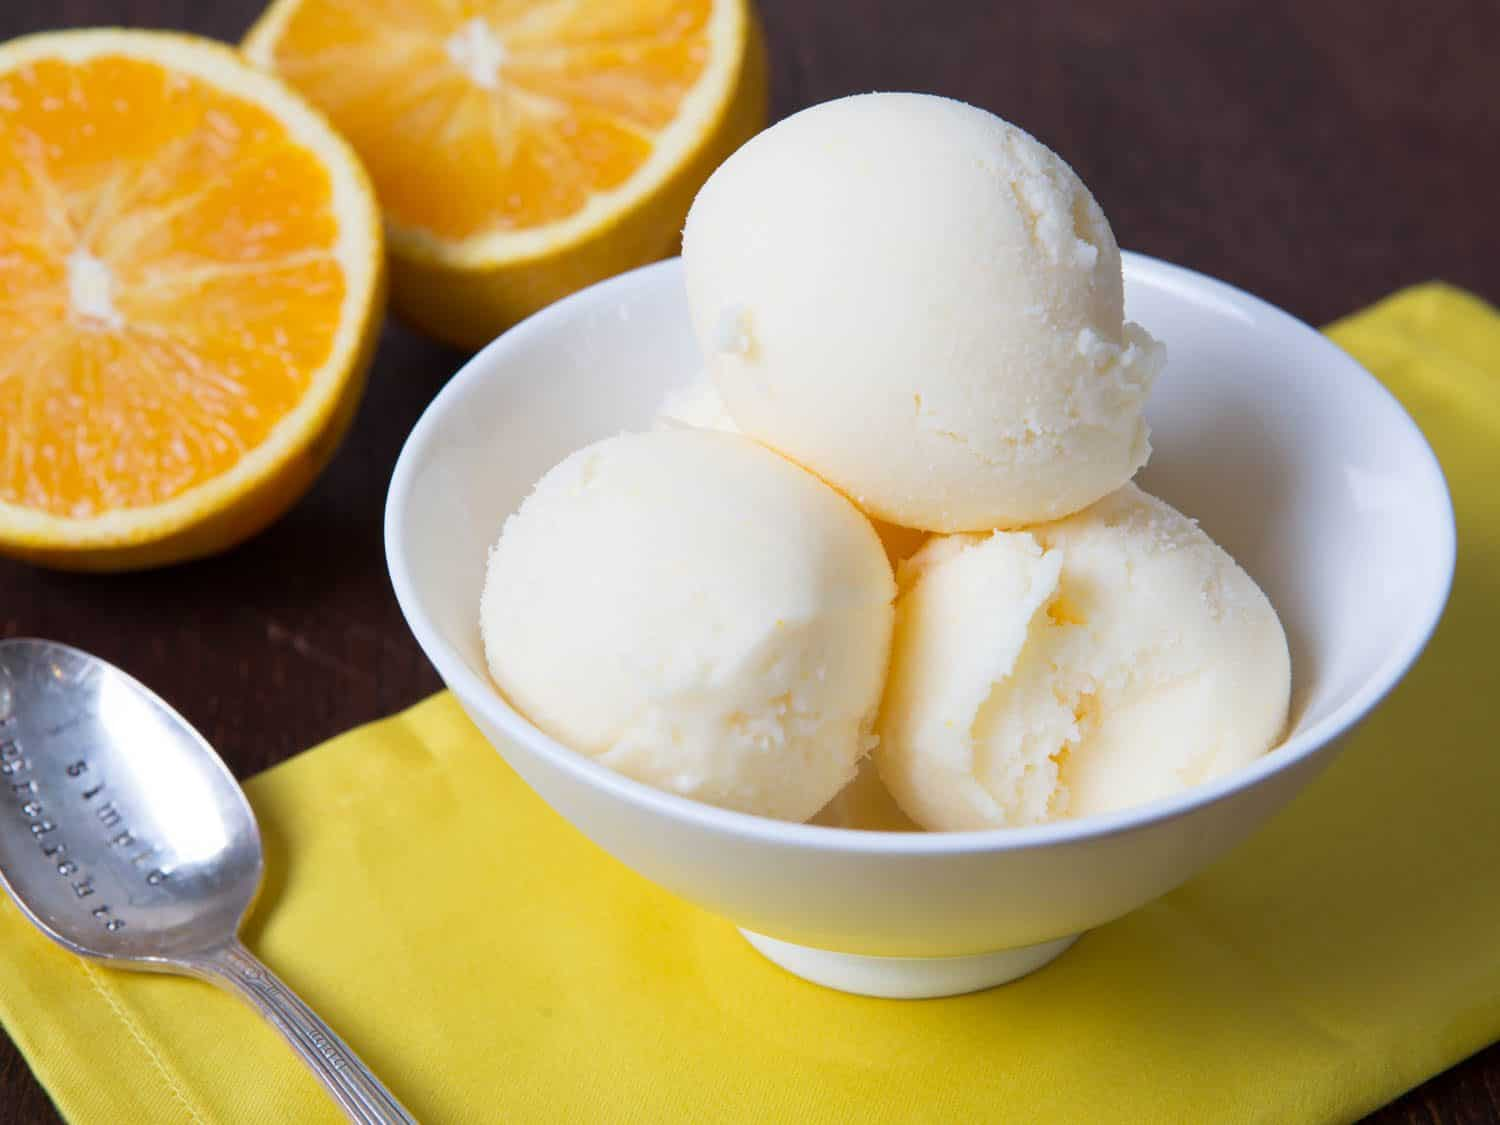 Homemade orange creamsicle frozen yogurt